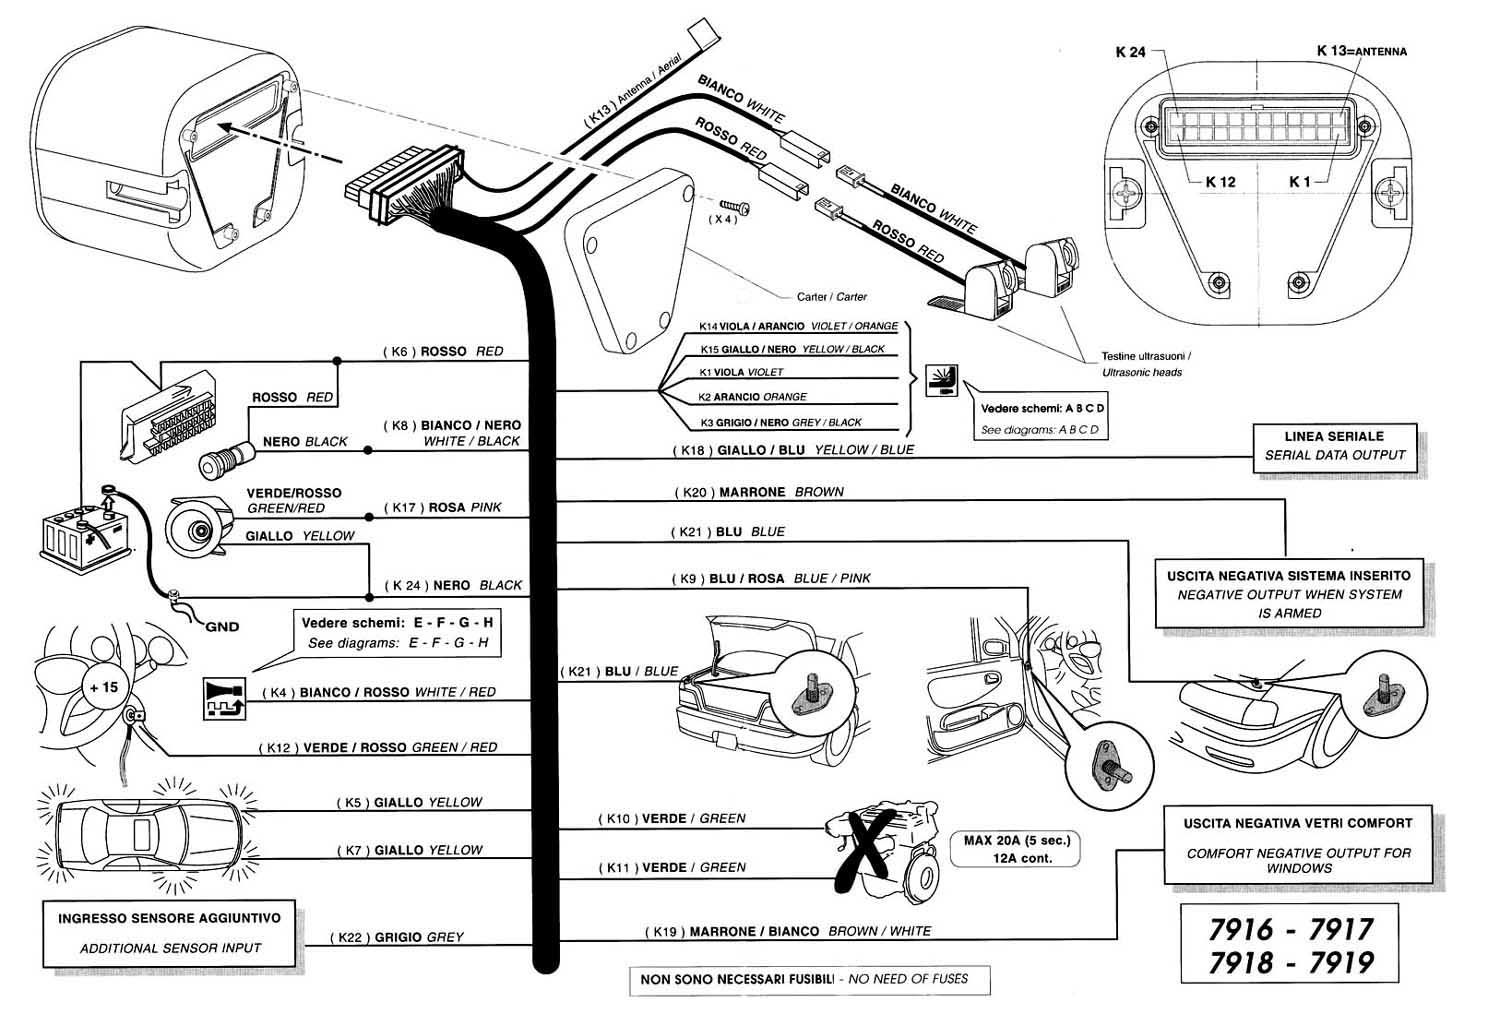 Three Phase Generator Wiring Diagram likewise Iveco Daily Euro 4 Repair Manual besides 1982 Chevy S10 Ignition Switch Wiring Diagram Wiring Diagrams additionally Art002 together with How To Wire A Switch And An Outlet In Same Box. on auto electrical wiring